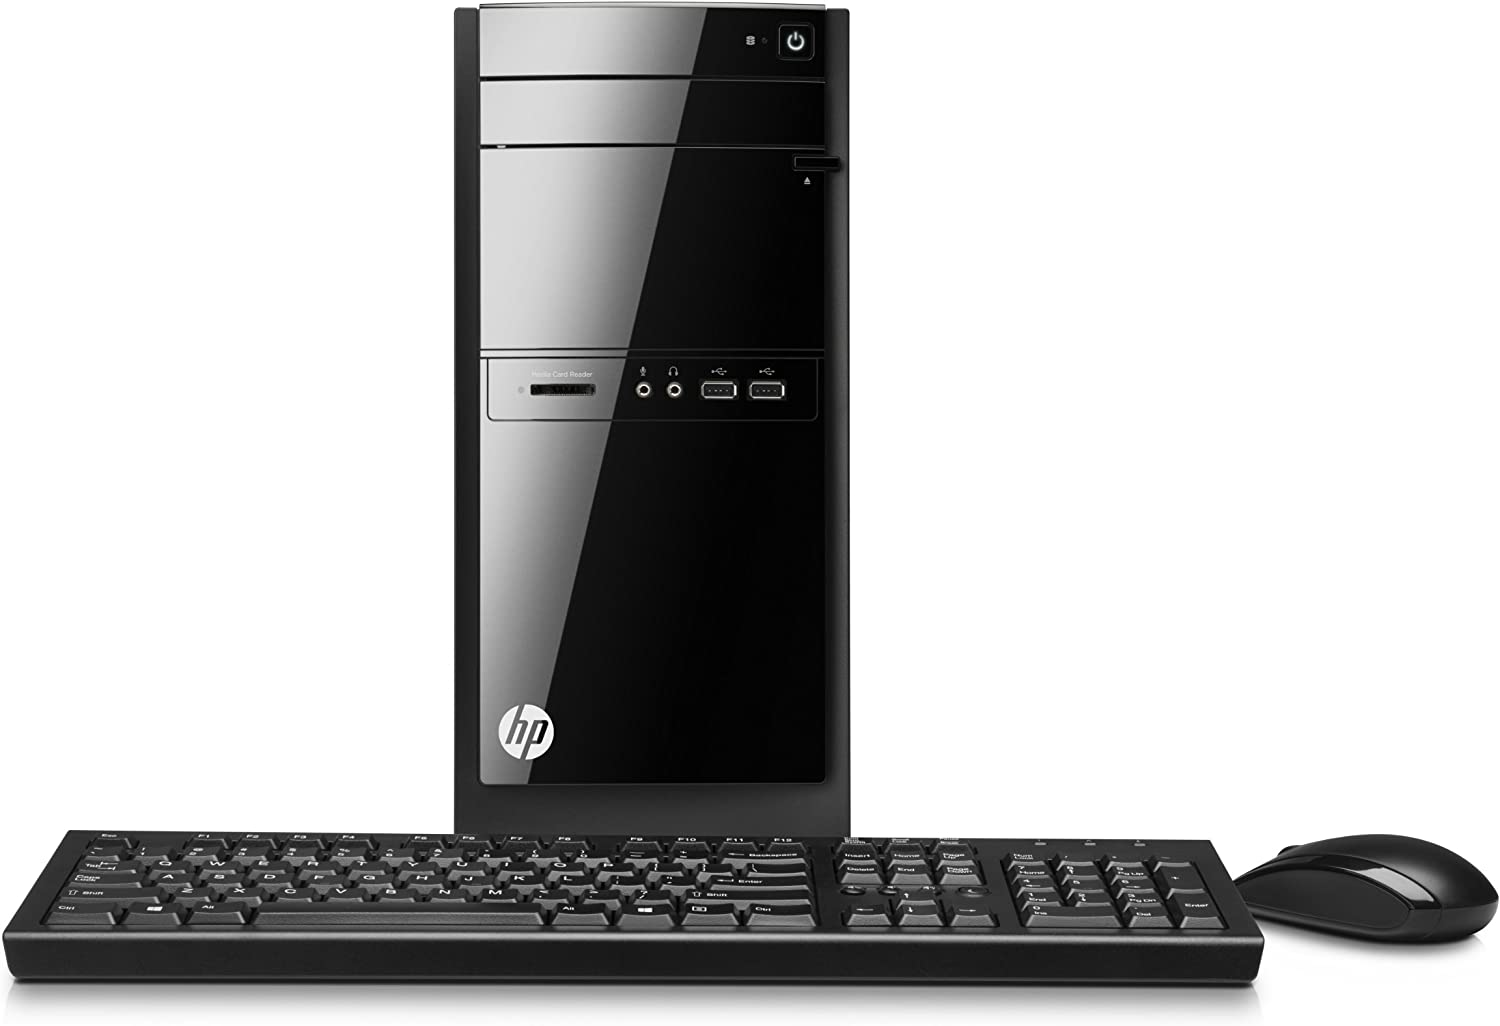 HP 110-420 Desktop (Core i3-3240T, 4GB RAM, 500GB HD, Windows 8.1) (Discontinued by Manufacturer)